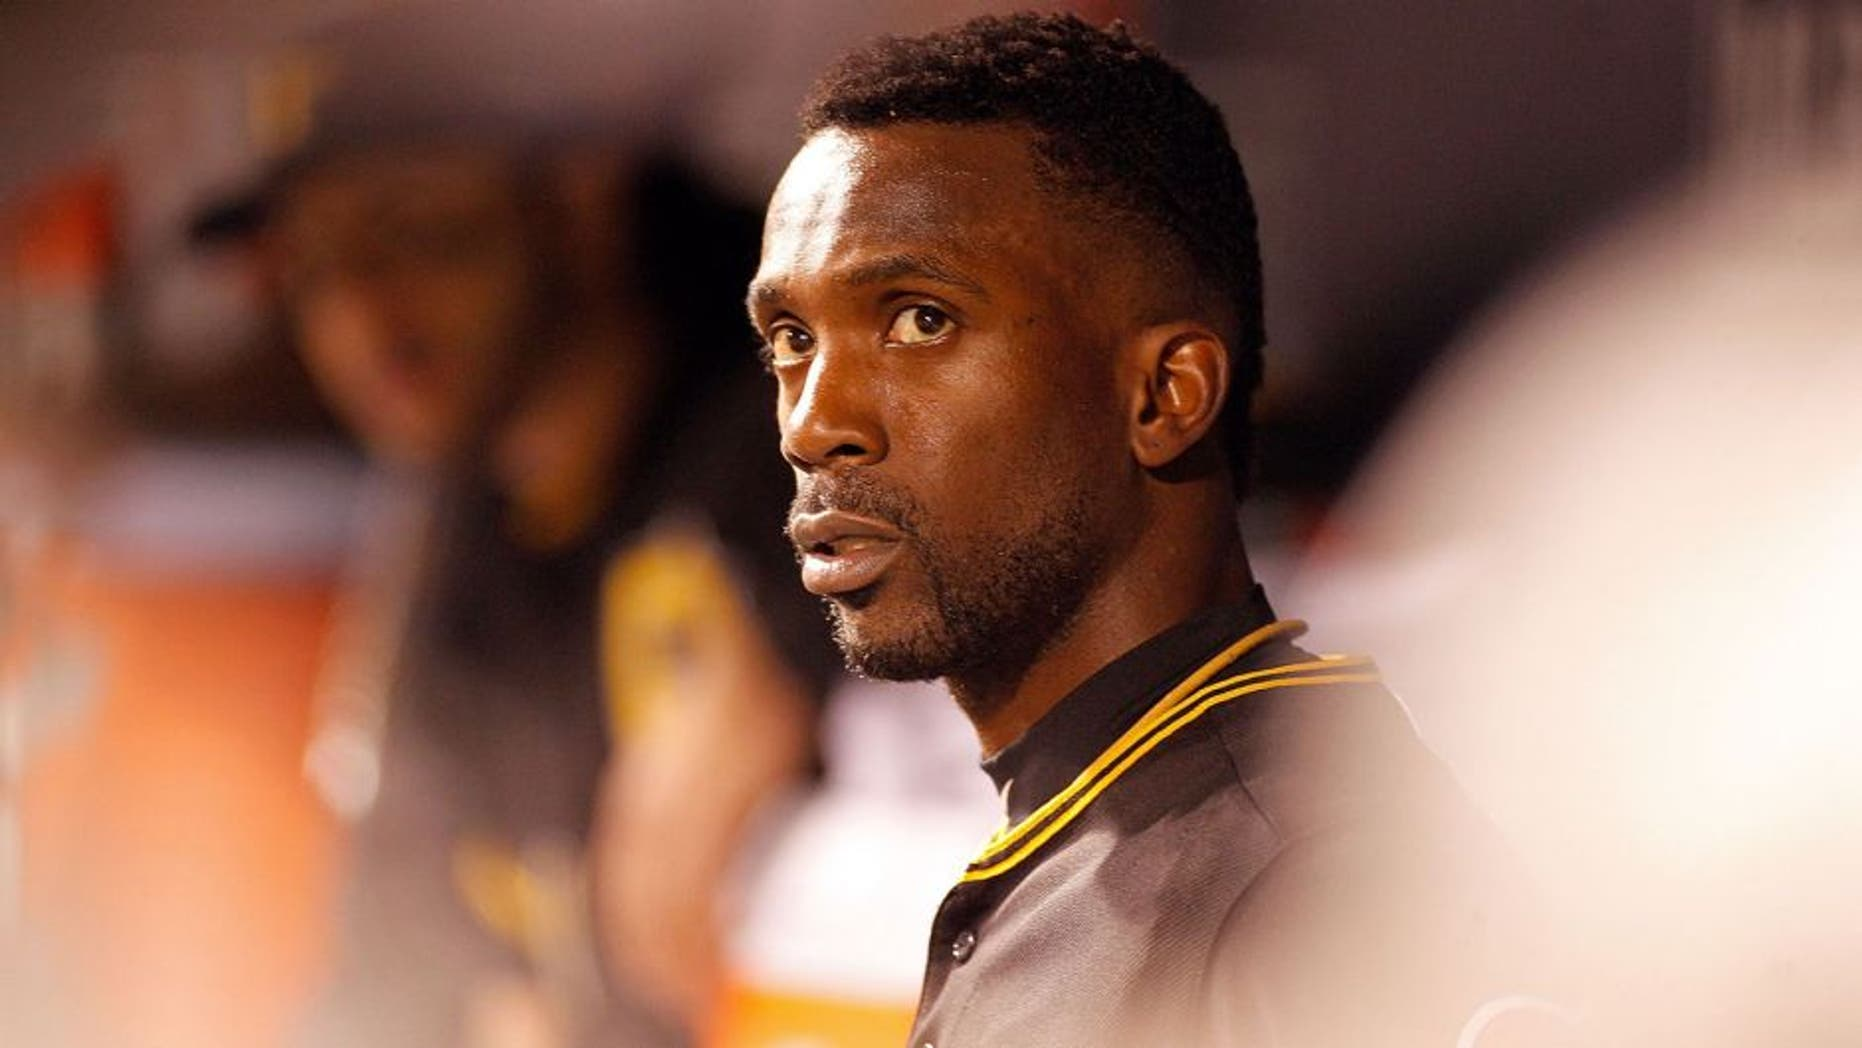 PITTSBURGH, PA - OCTOBER 07: Andrew McCutchen #22 of the Pittsburgh Pirates looks on in the dugout in the third inning during the National League Wild Card game against the Chicago Cubs at PNC Park on October 7, 2015 in Pittsburgh, Pennsylvania. (Photo by Justin K. Aller/Getty Images)